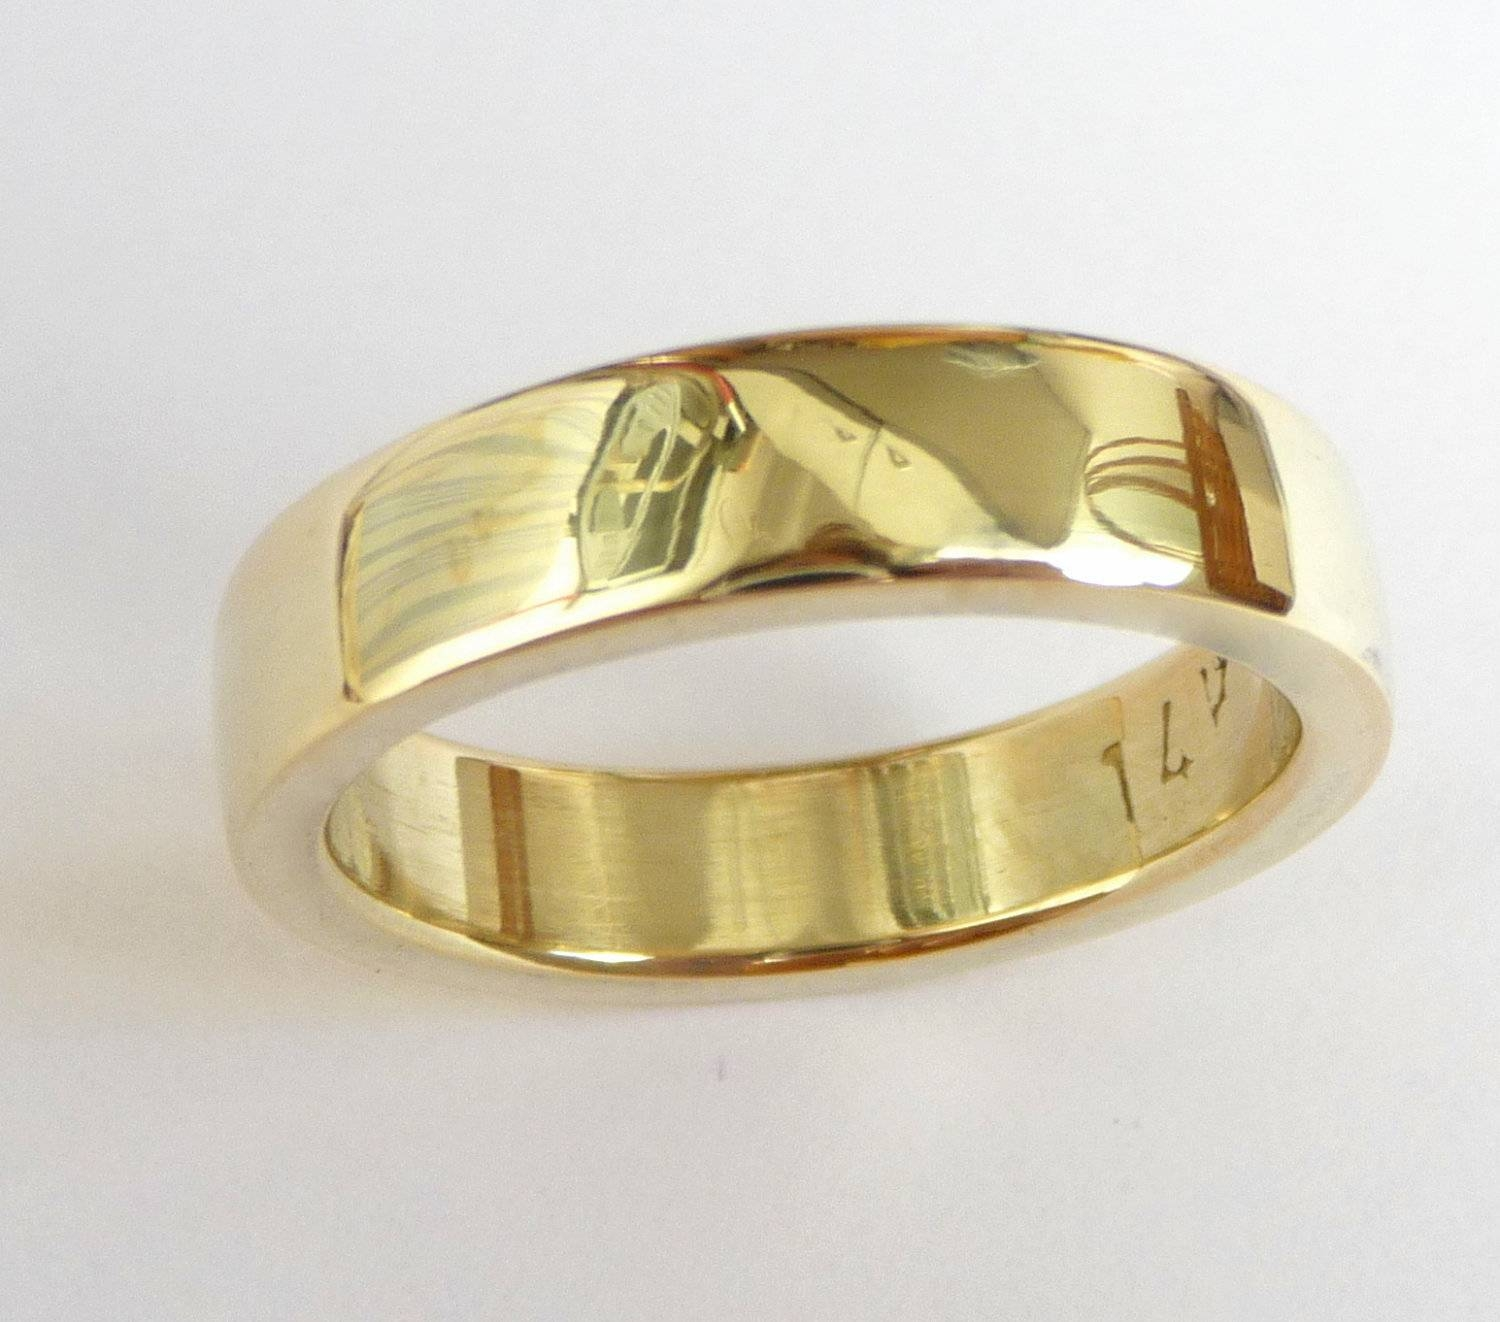 Mens Wedding Band Men's Gold Ring Men Wedding Ring Thick Throughout Male Gold Wedding Bands (View 2 of 15)